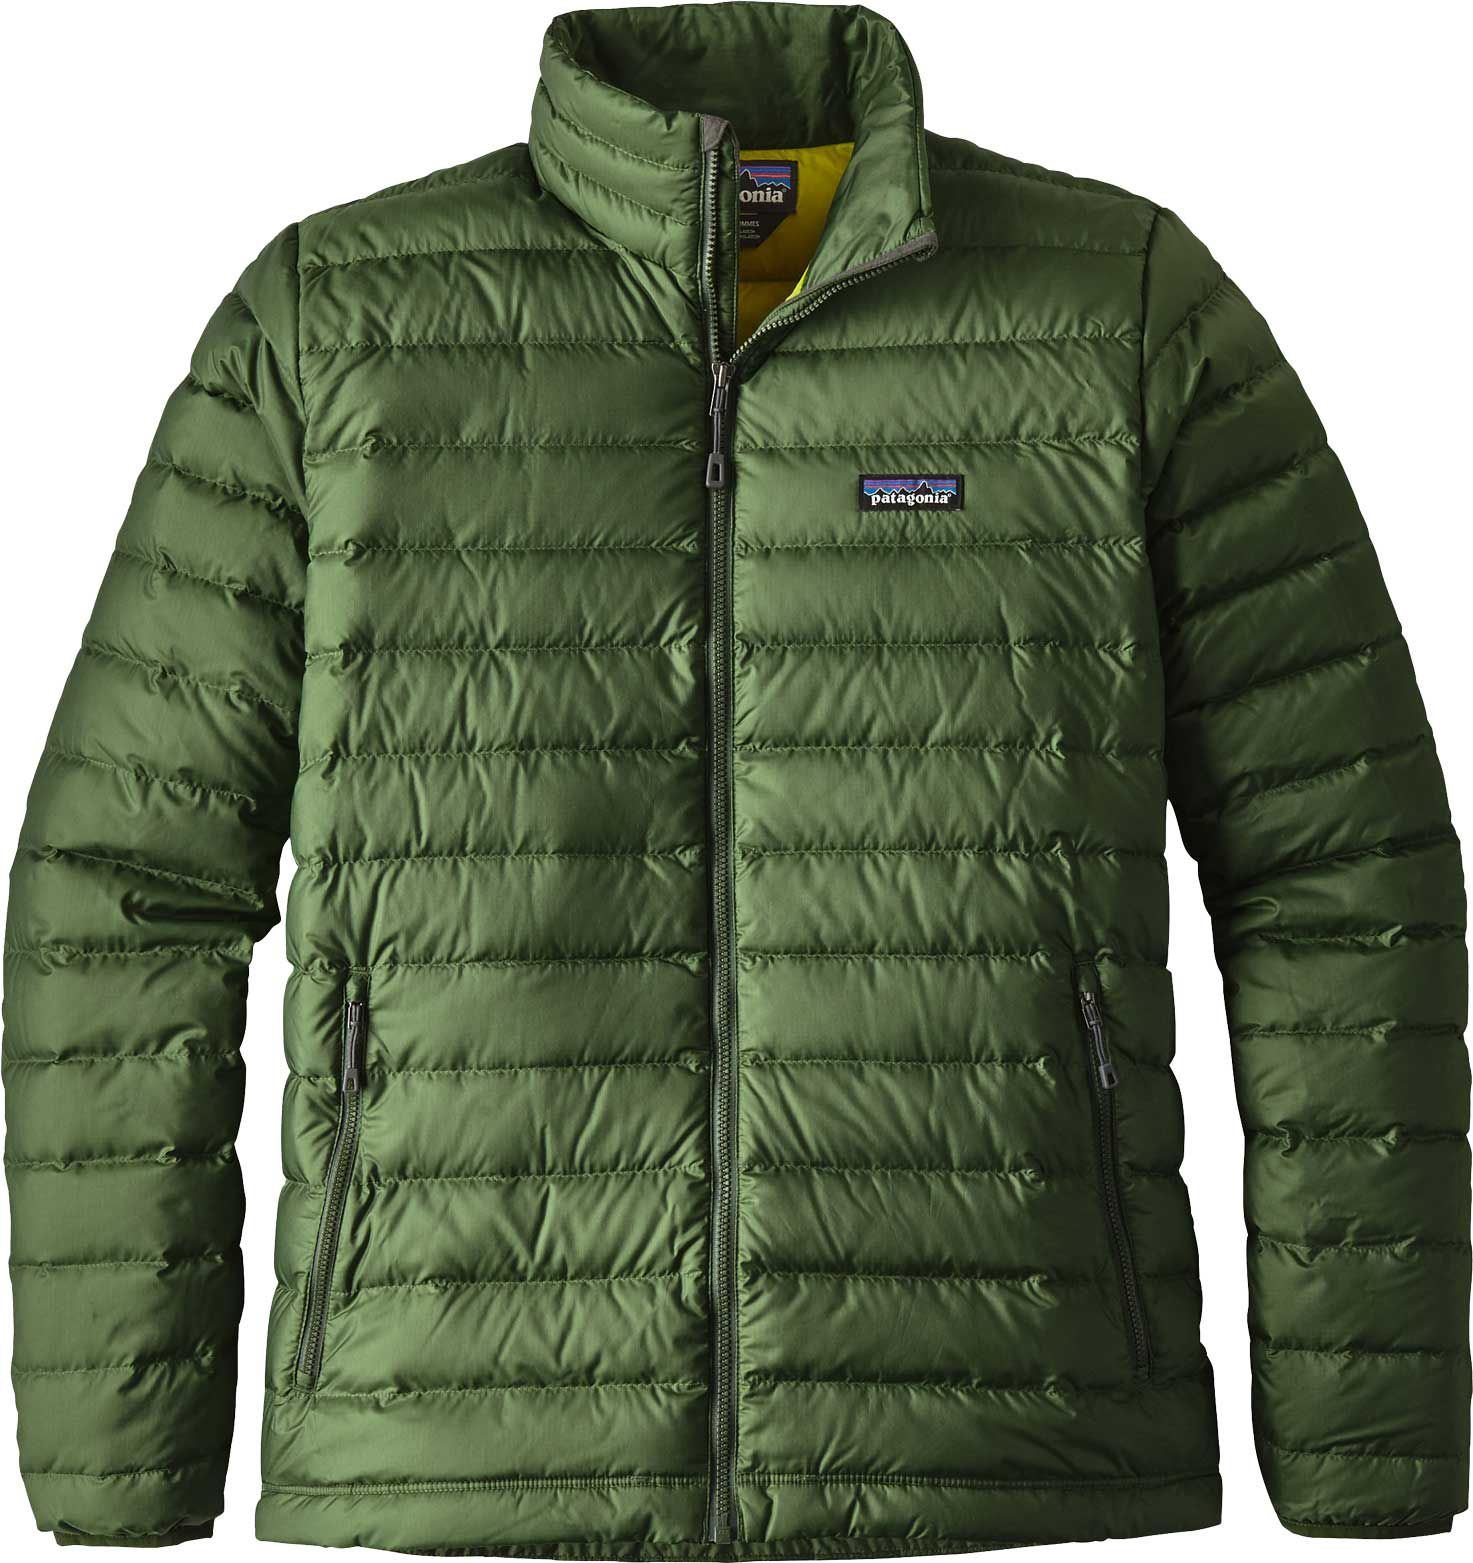 Mens Patagonia Down Jacket Jackets Review